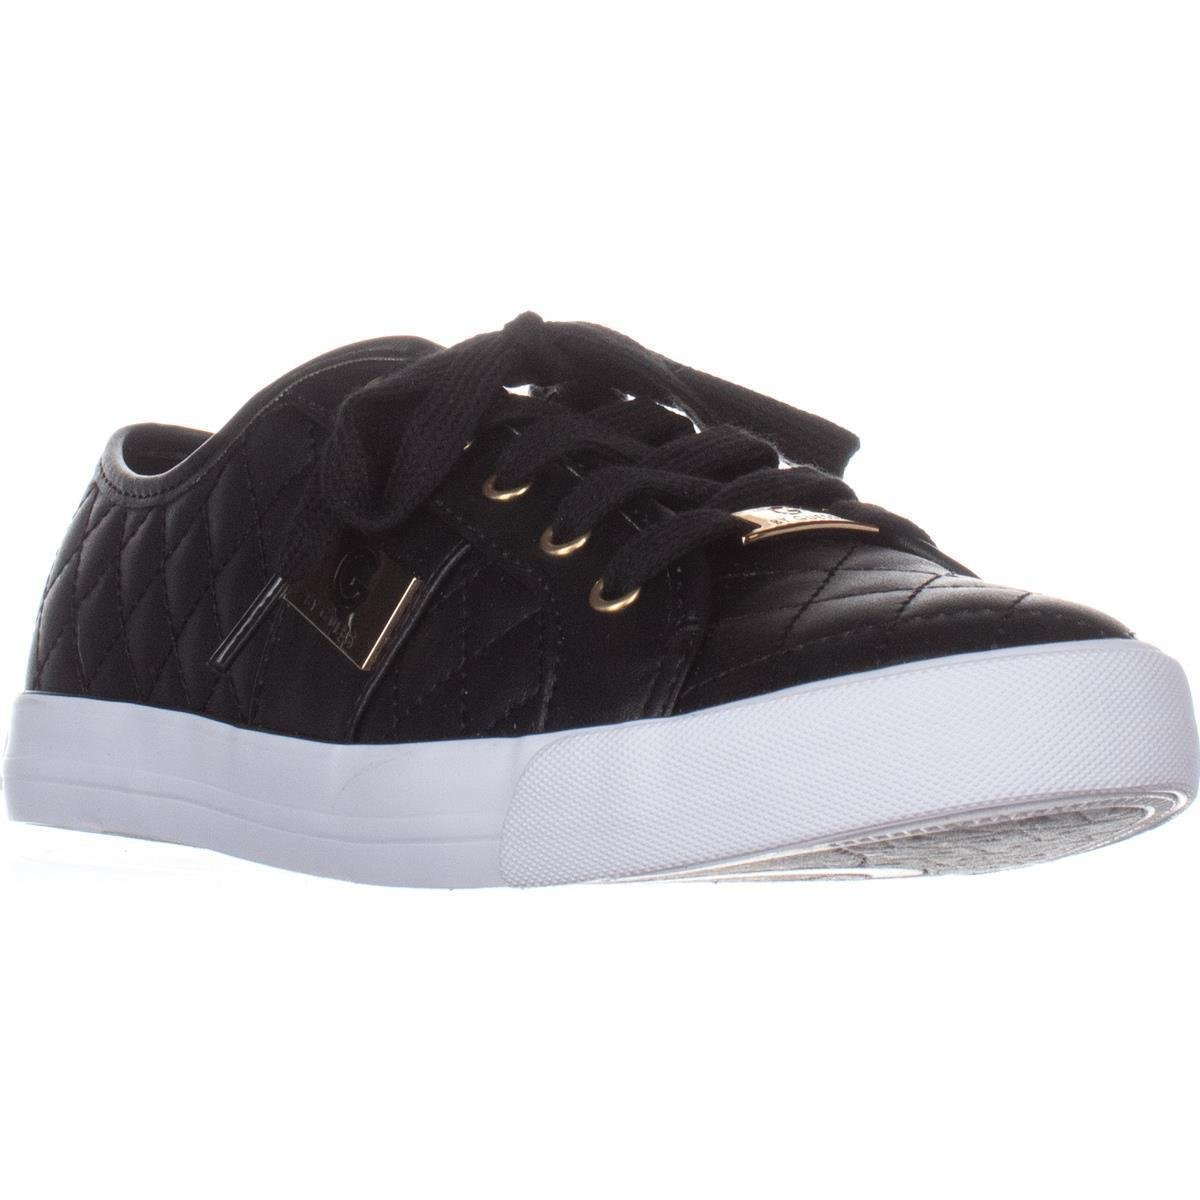 bb5e03971140b G by GUESS Backer2 Women's Lace-Up Sneakers Shoes